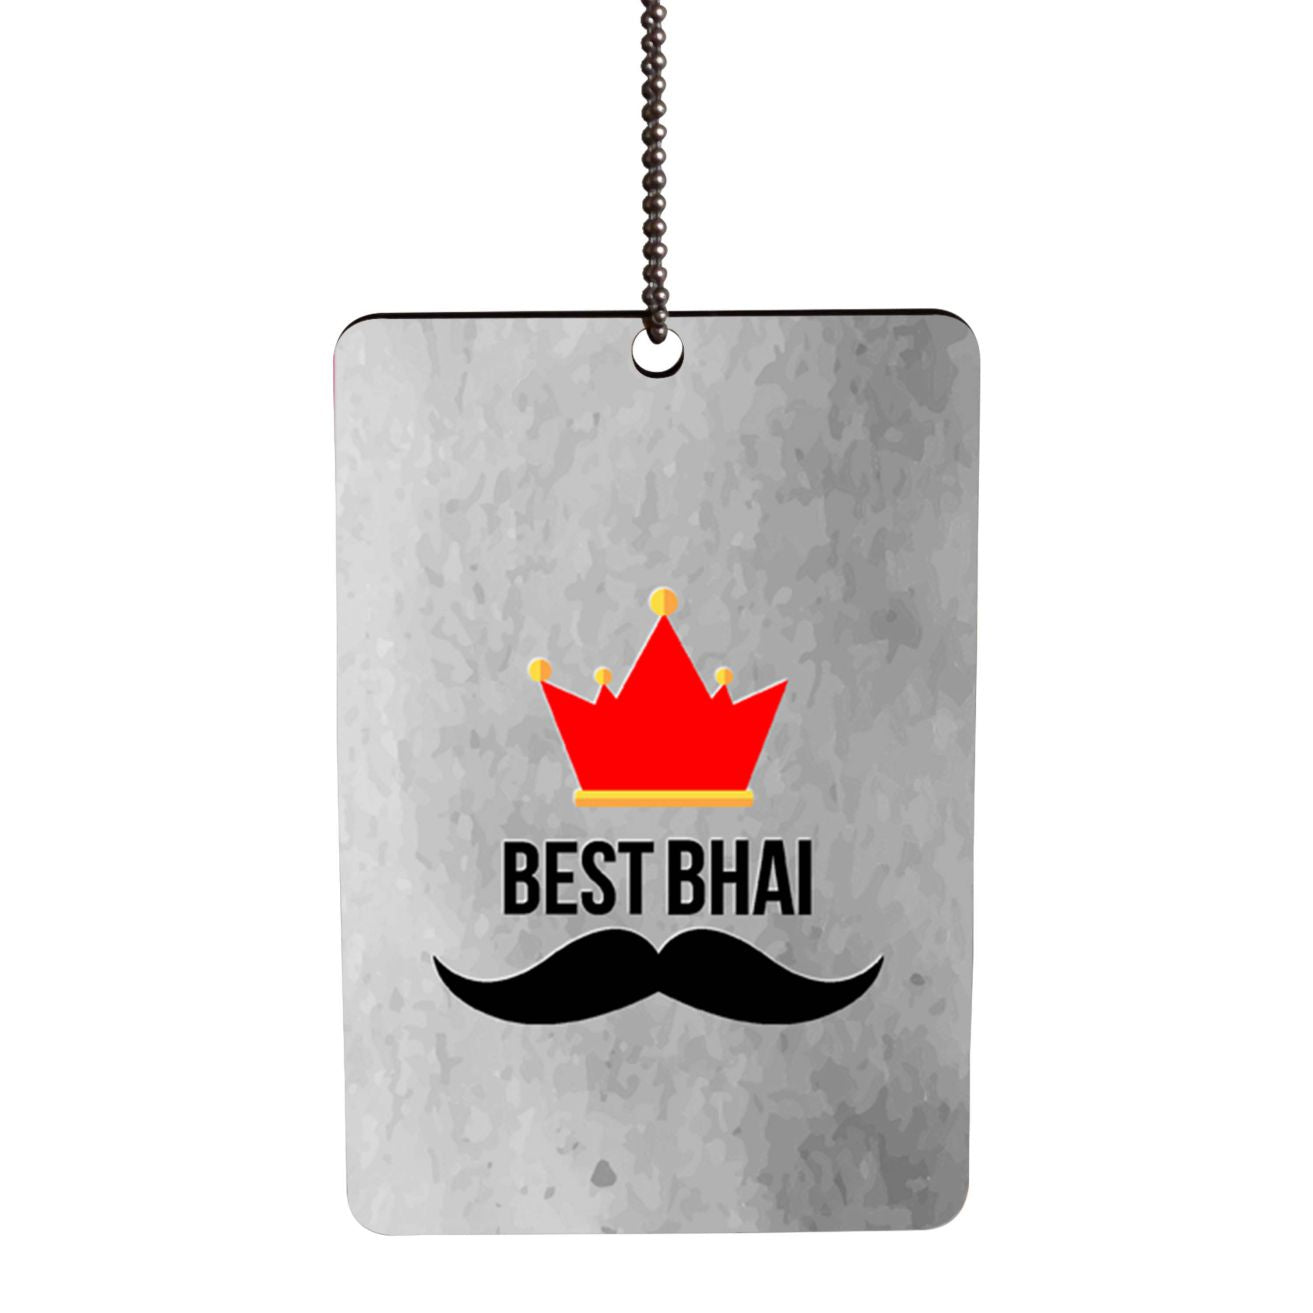 Best Bhai Car Hanging